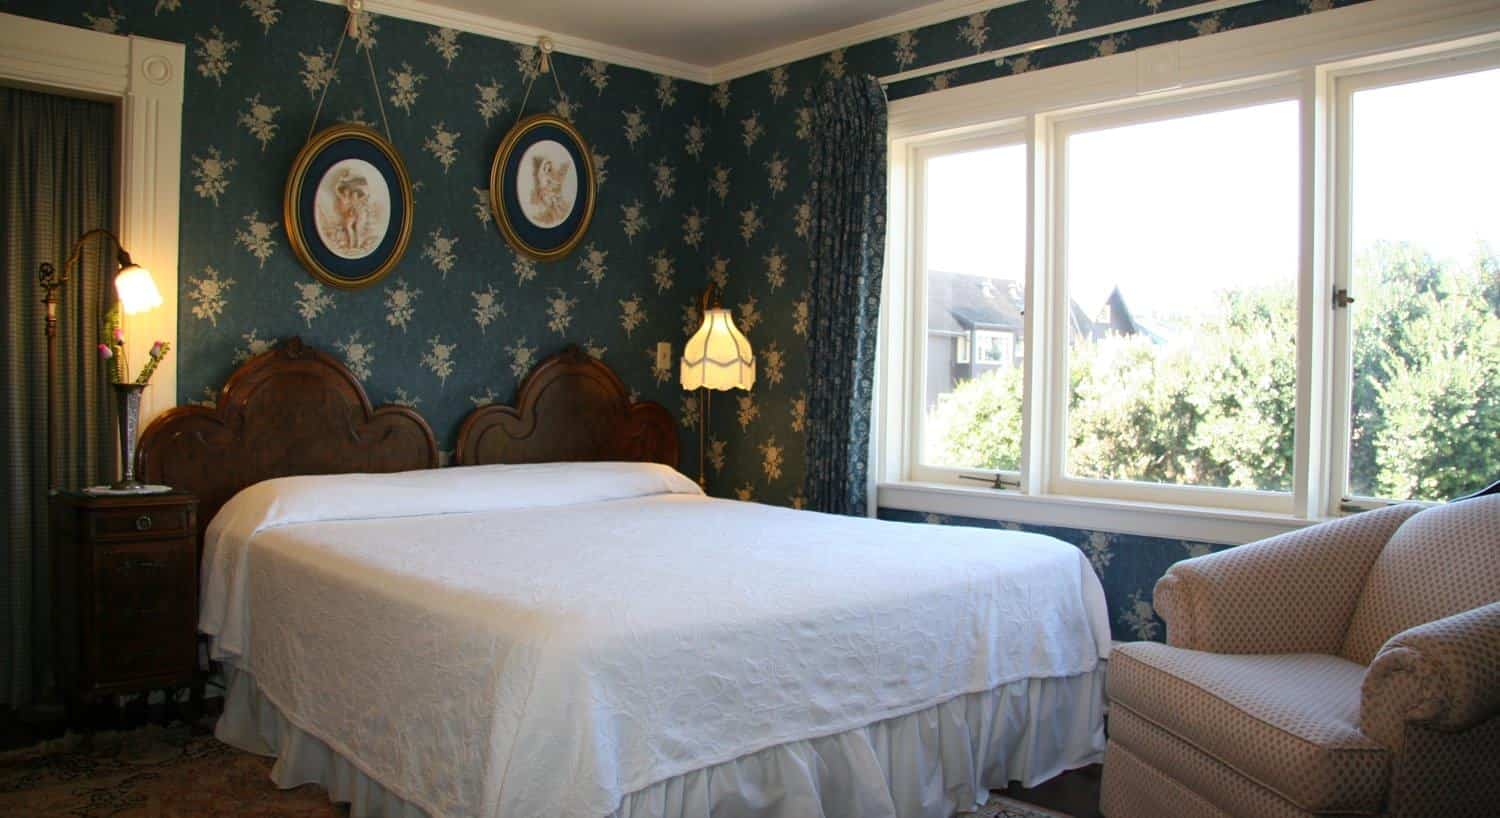 Edith guest room with blue-green papered walls, triple window, upholstered chair and wood bed with white bedding